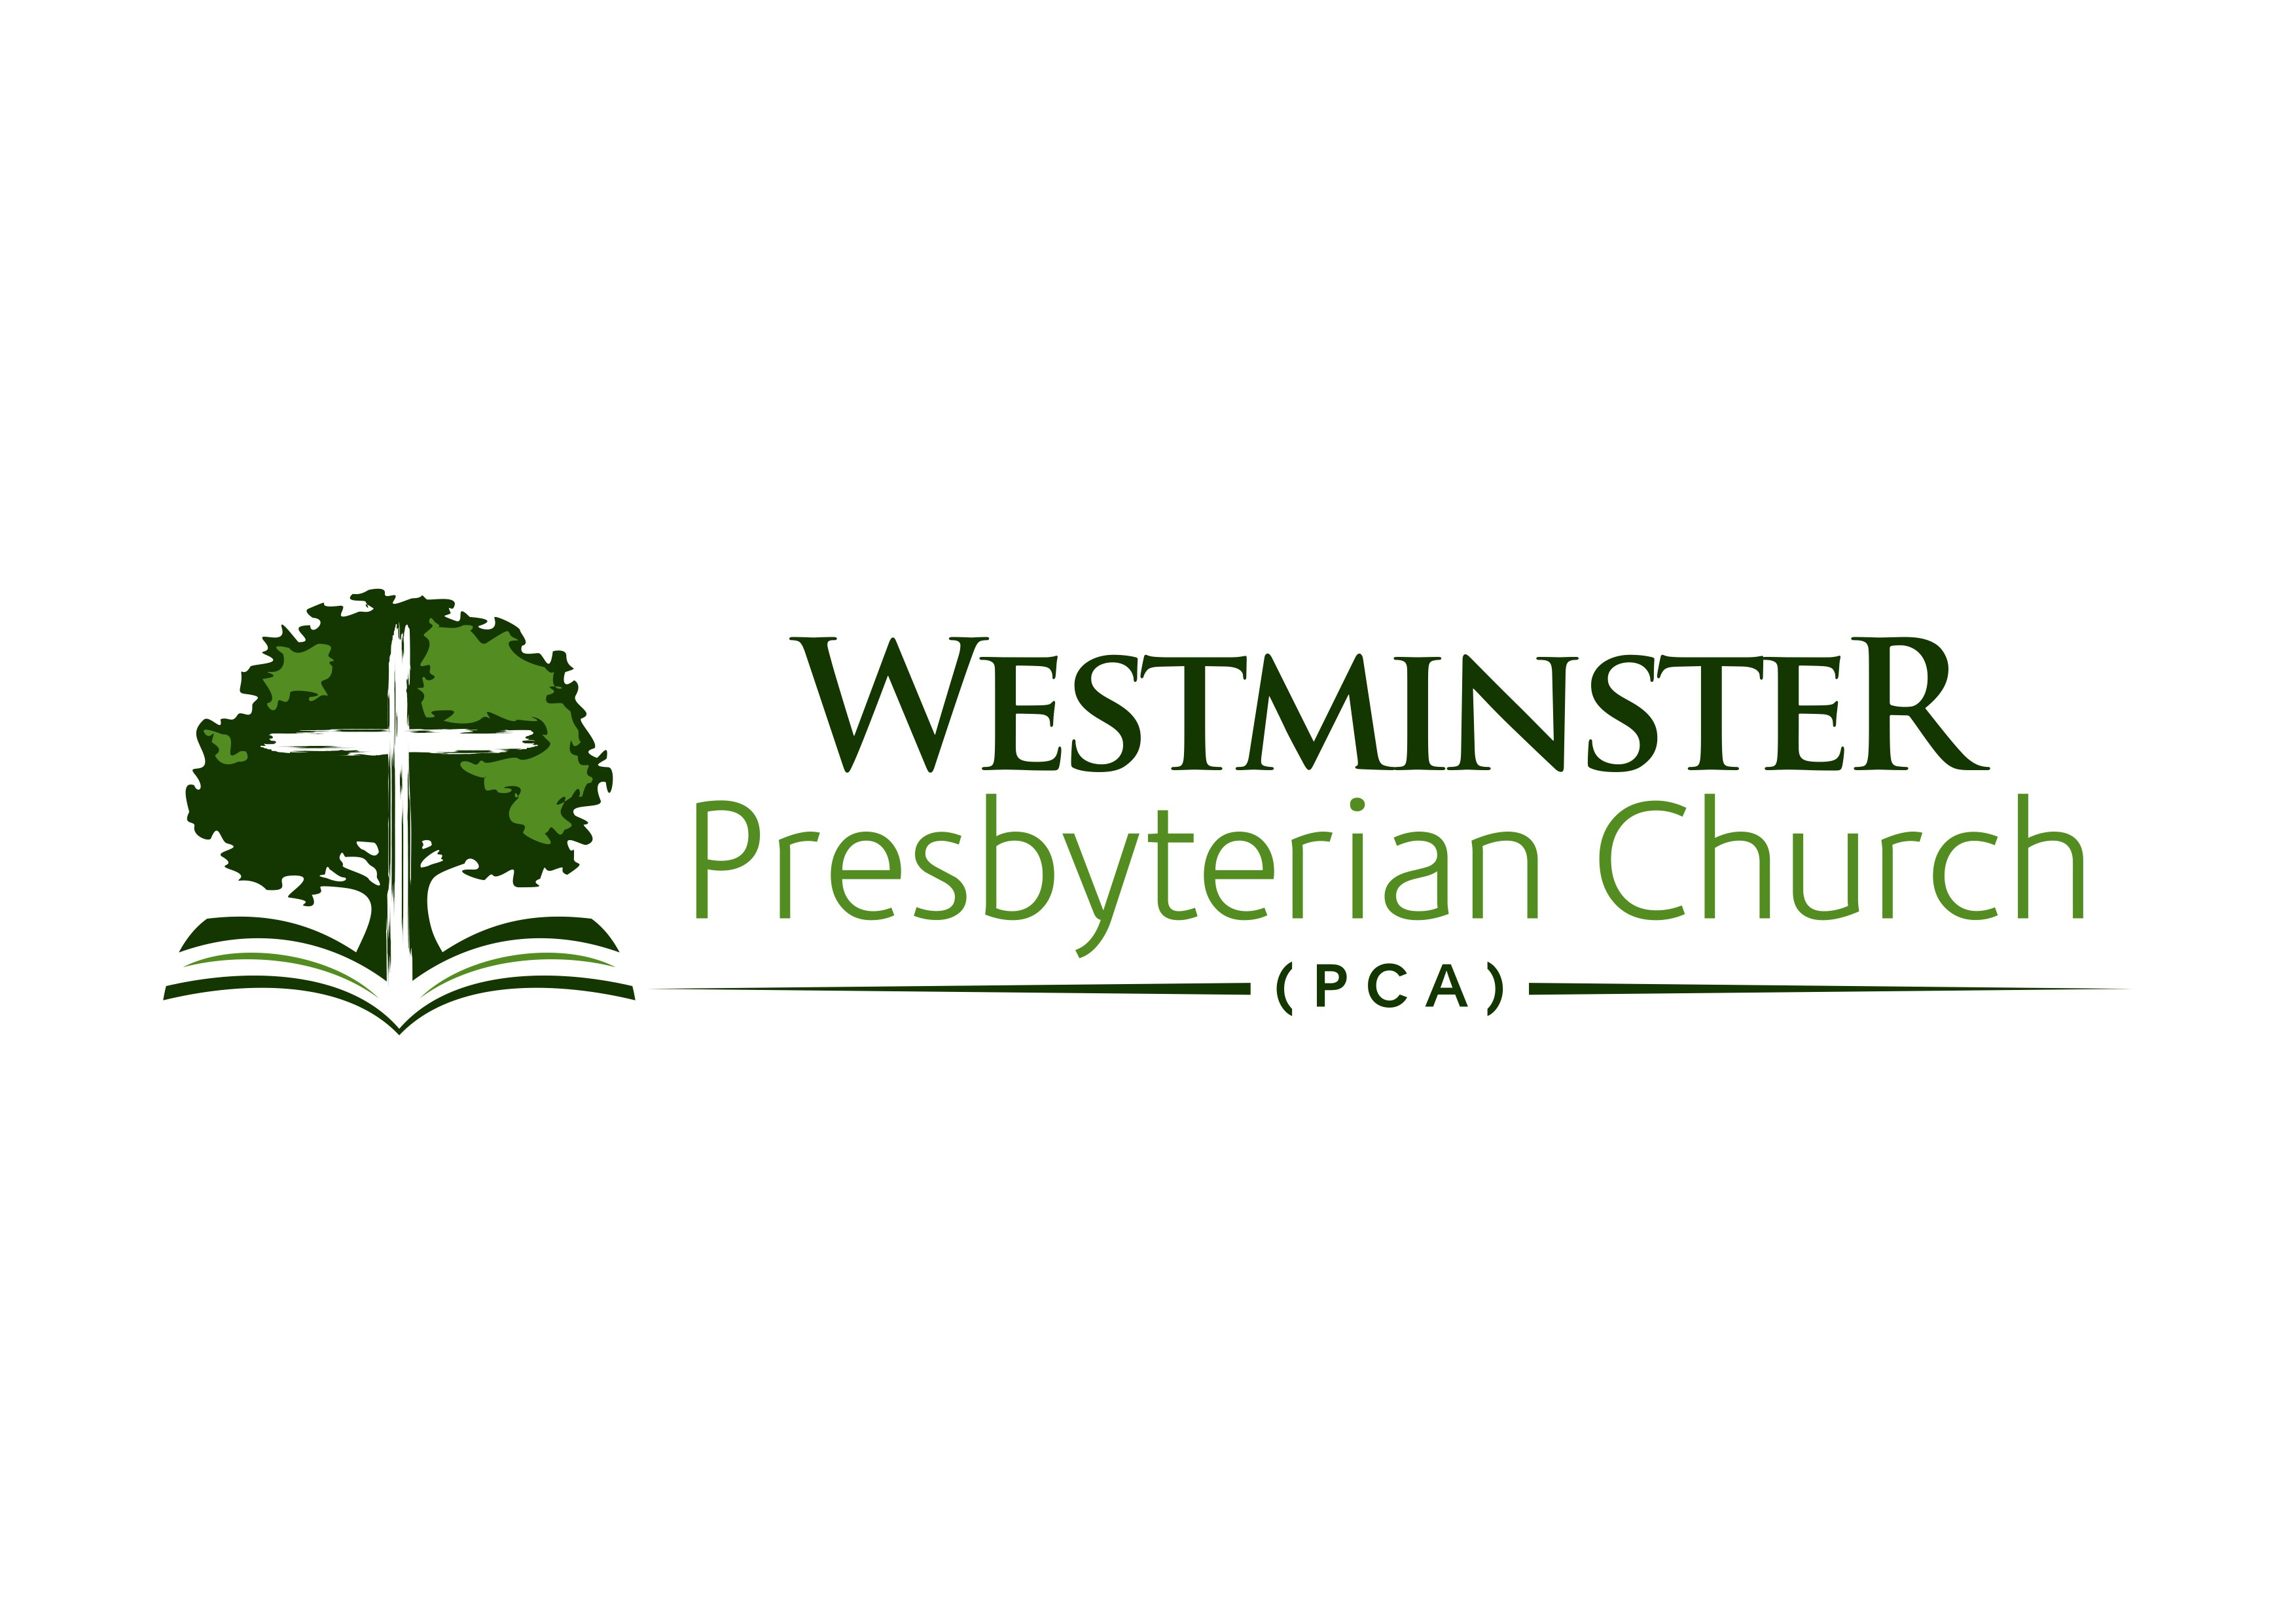 A new vision for a church seeking to grow in faithfulness to the Great Commission and Great Command